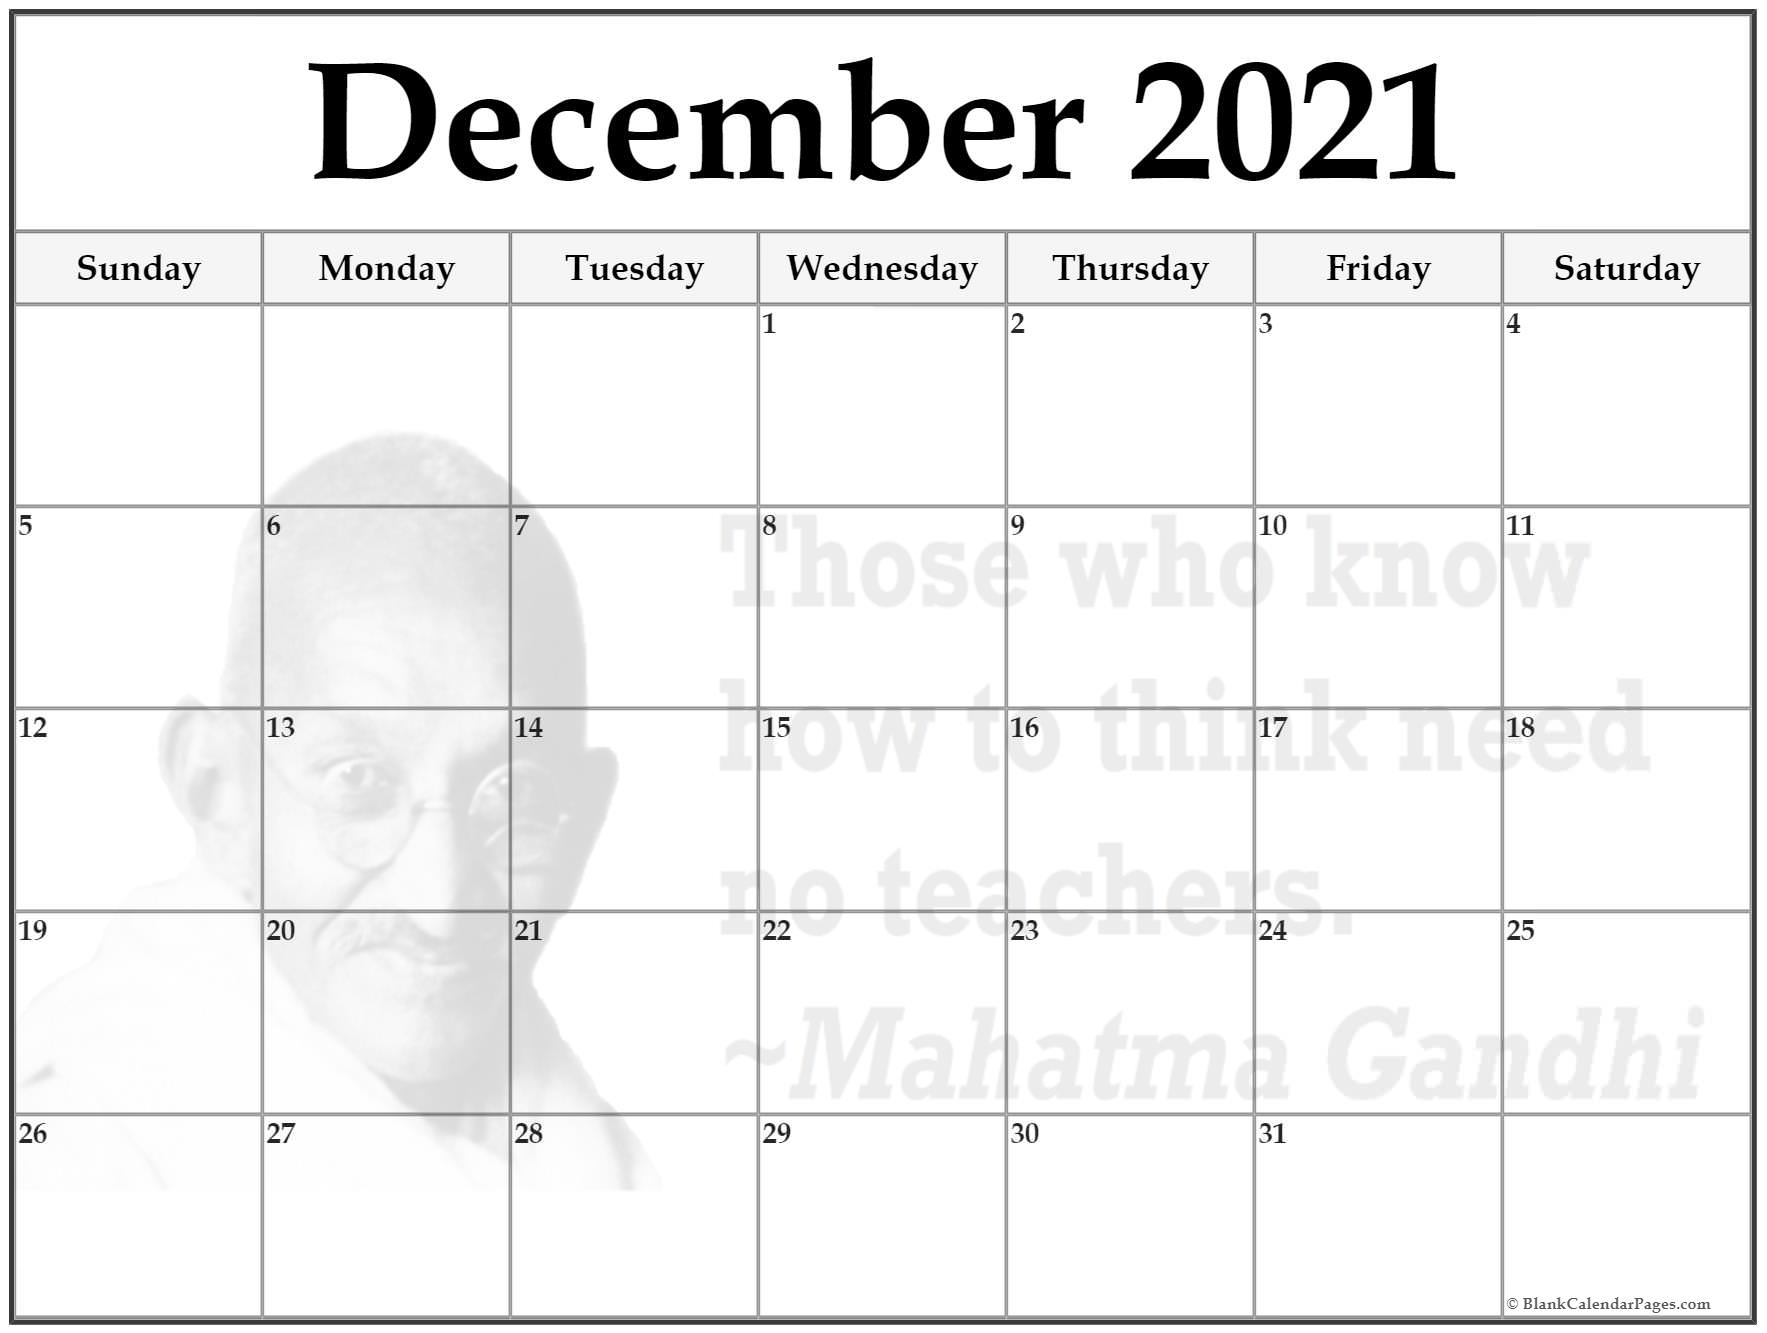 December 2018 monthly calendar template. Those who know how to think need no teachers. ~Mahatma Gandhi